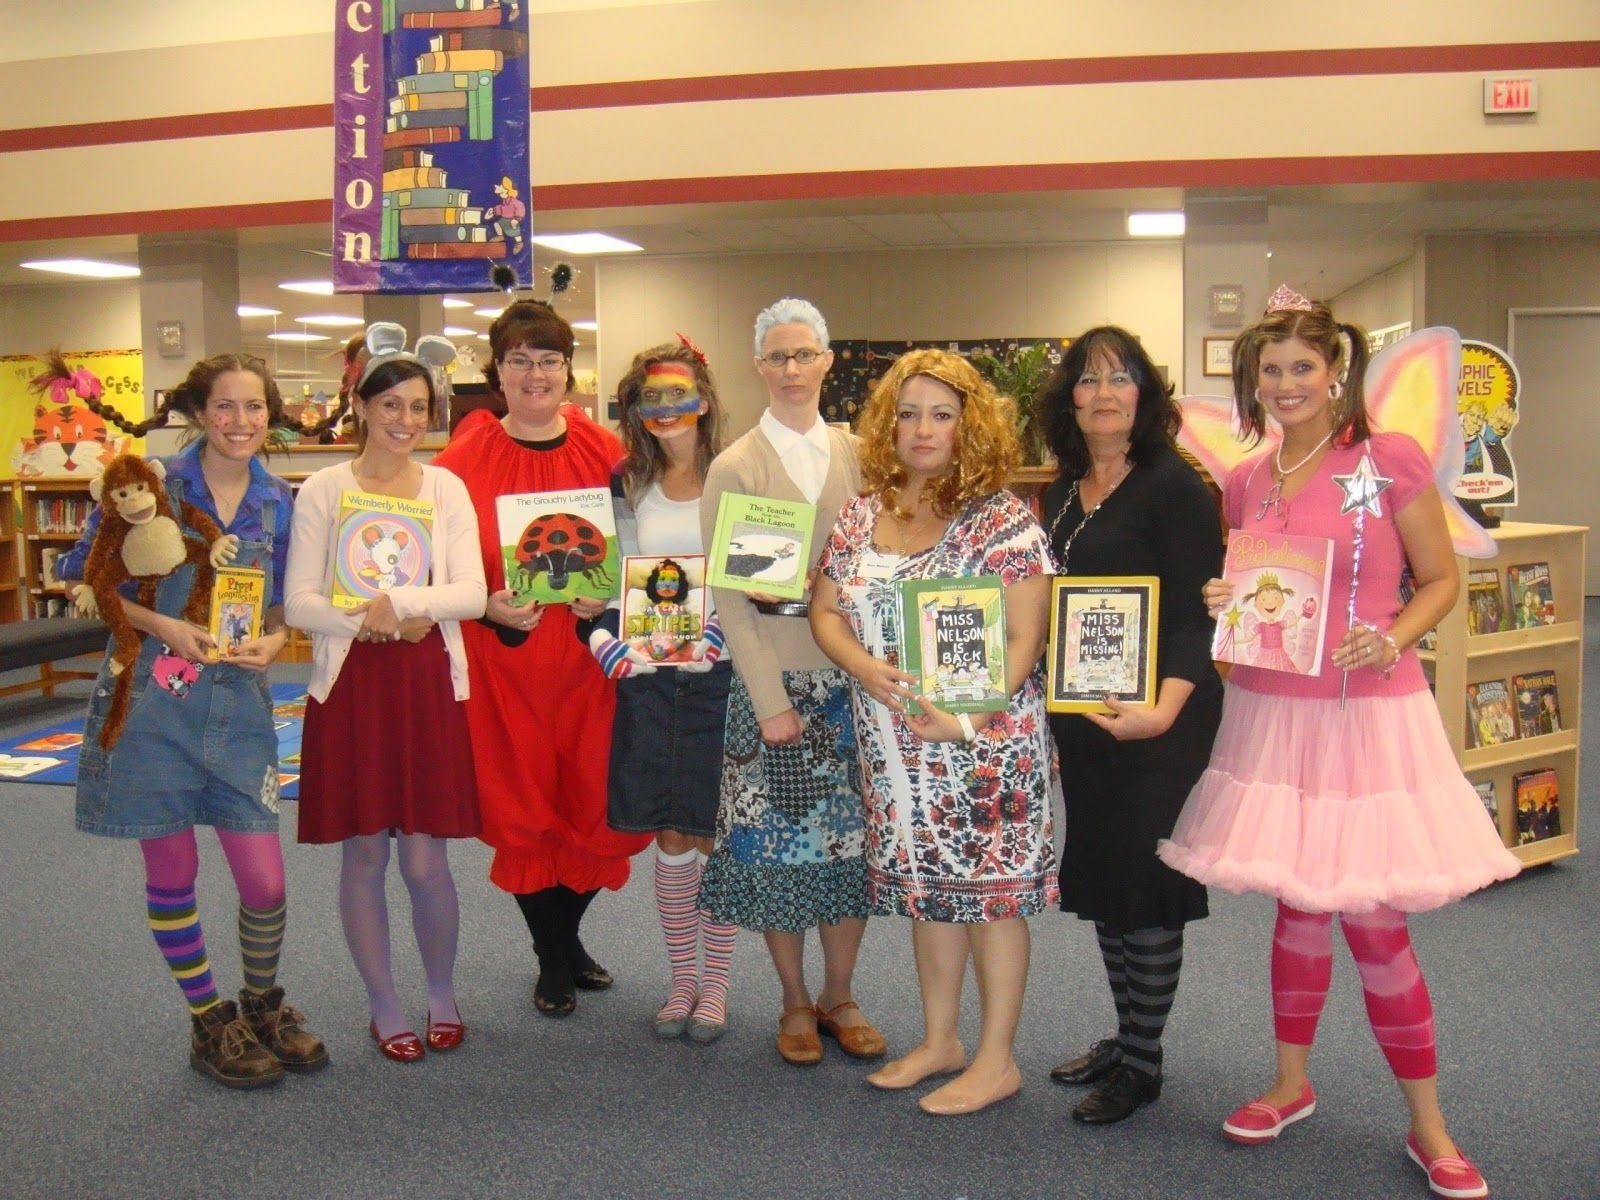 dress like book character | book character costumes | halloween